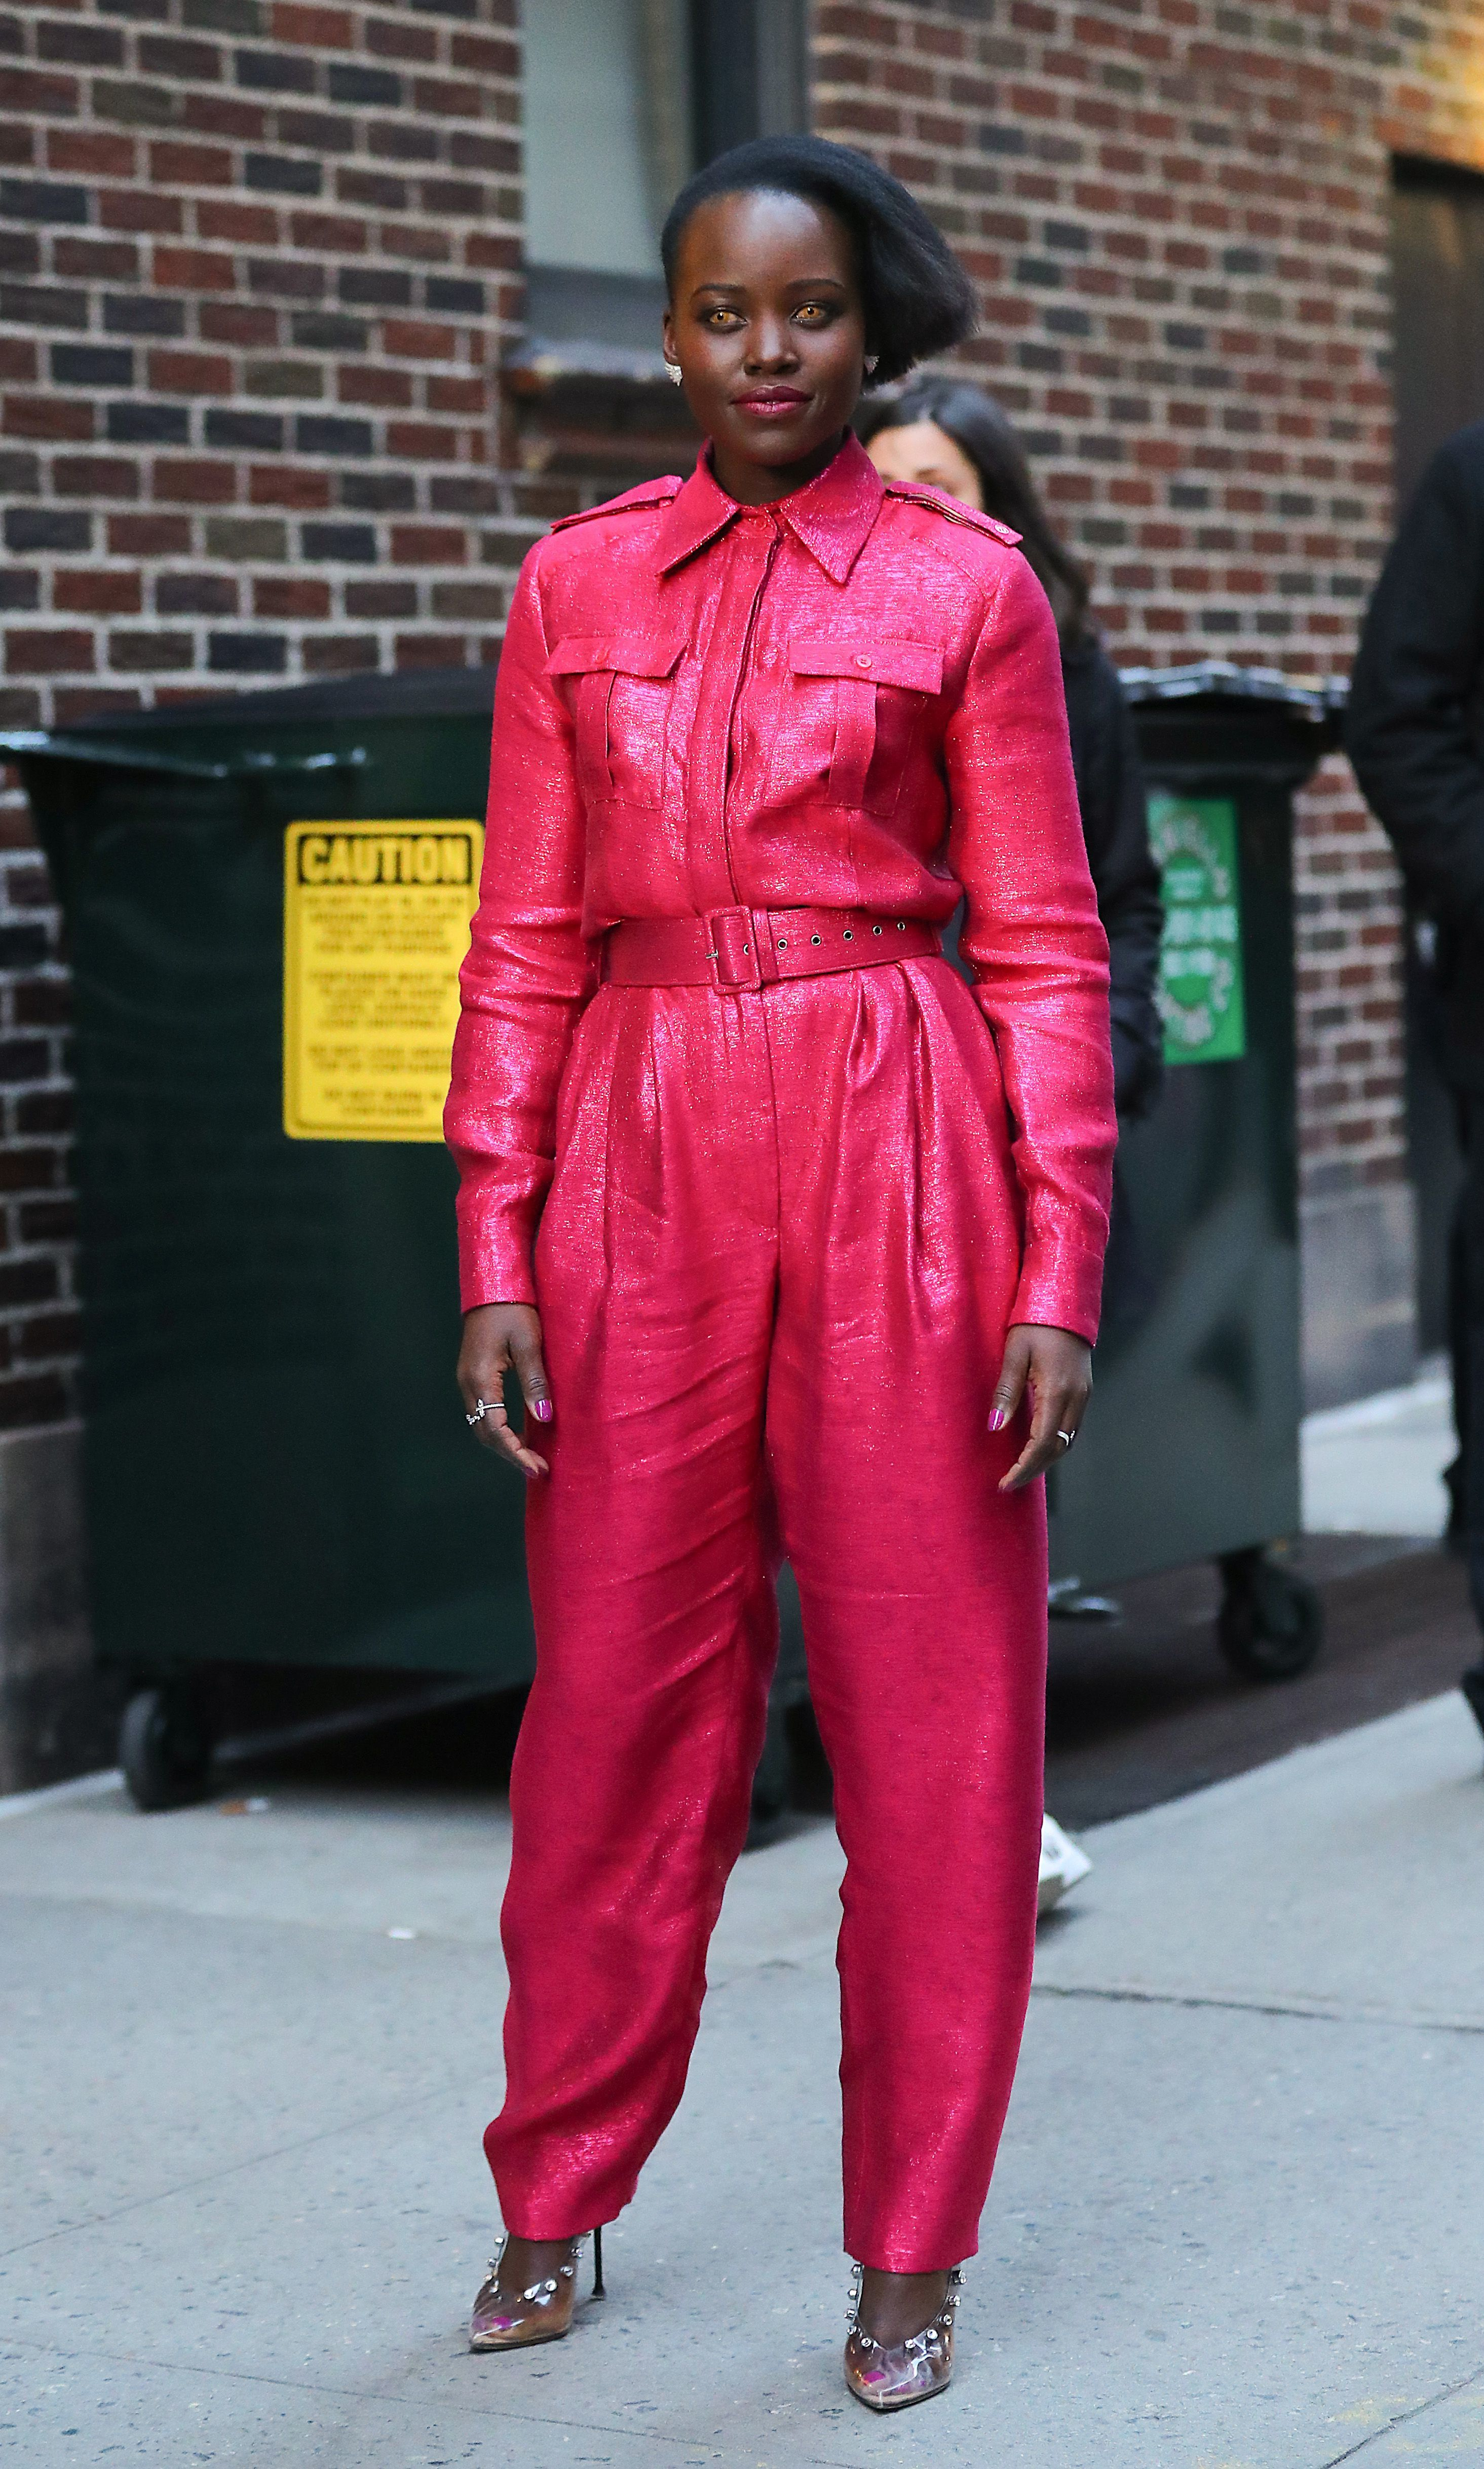 """Lupita Nyong'o appears at """"The Late Show with Stephen Colbert"""" TV show in New York City on March 18, 2019."""